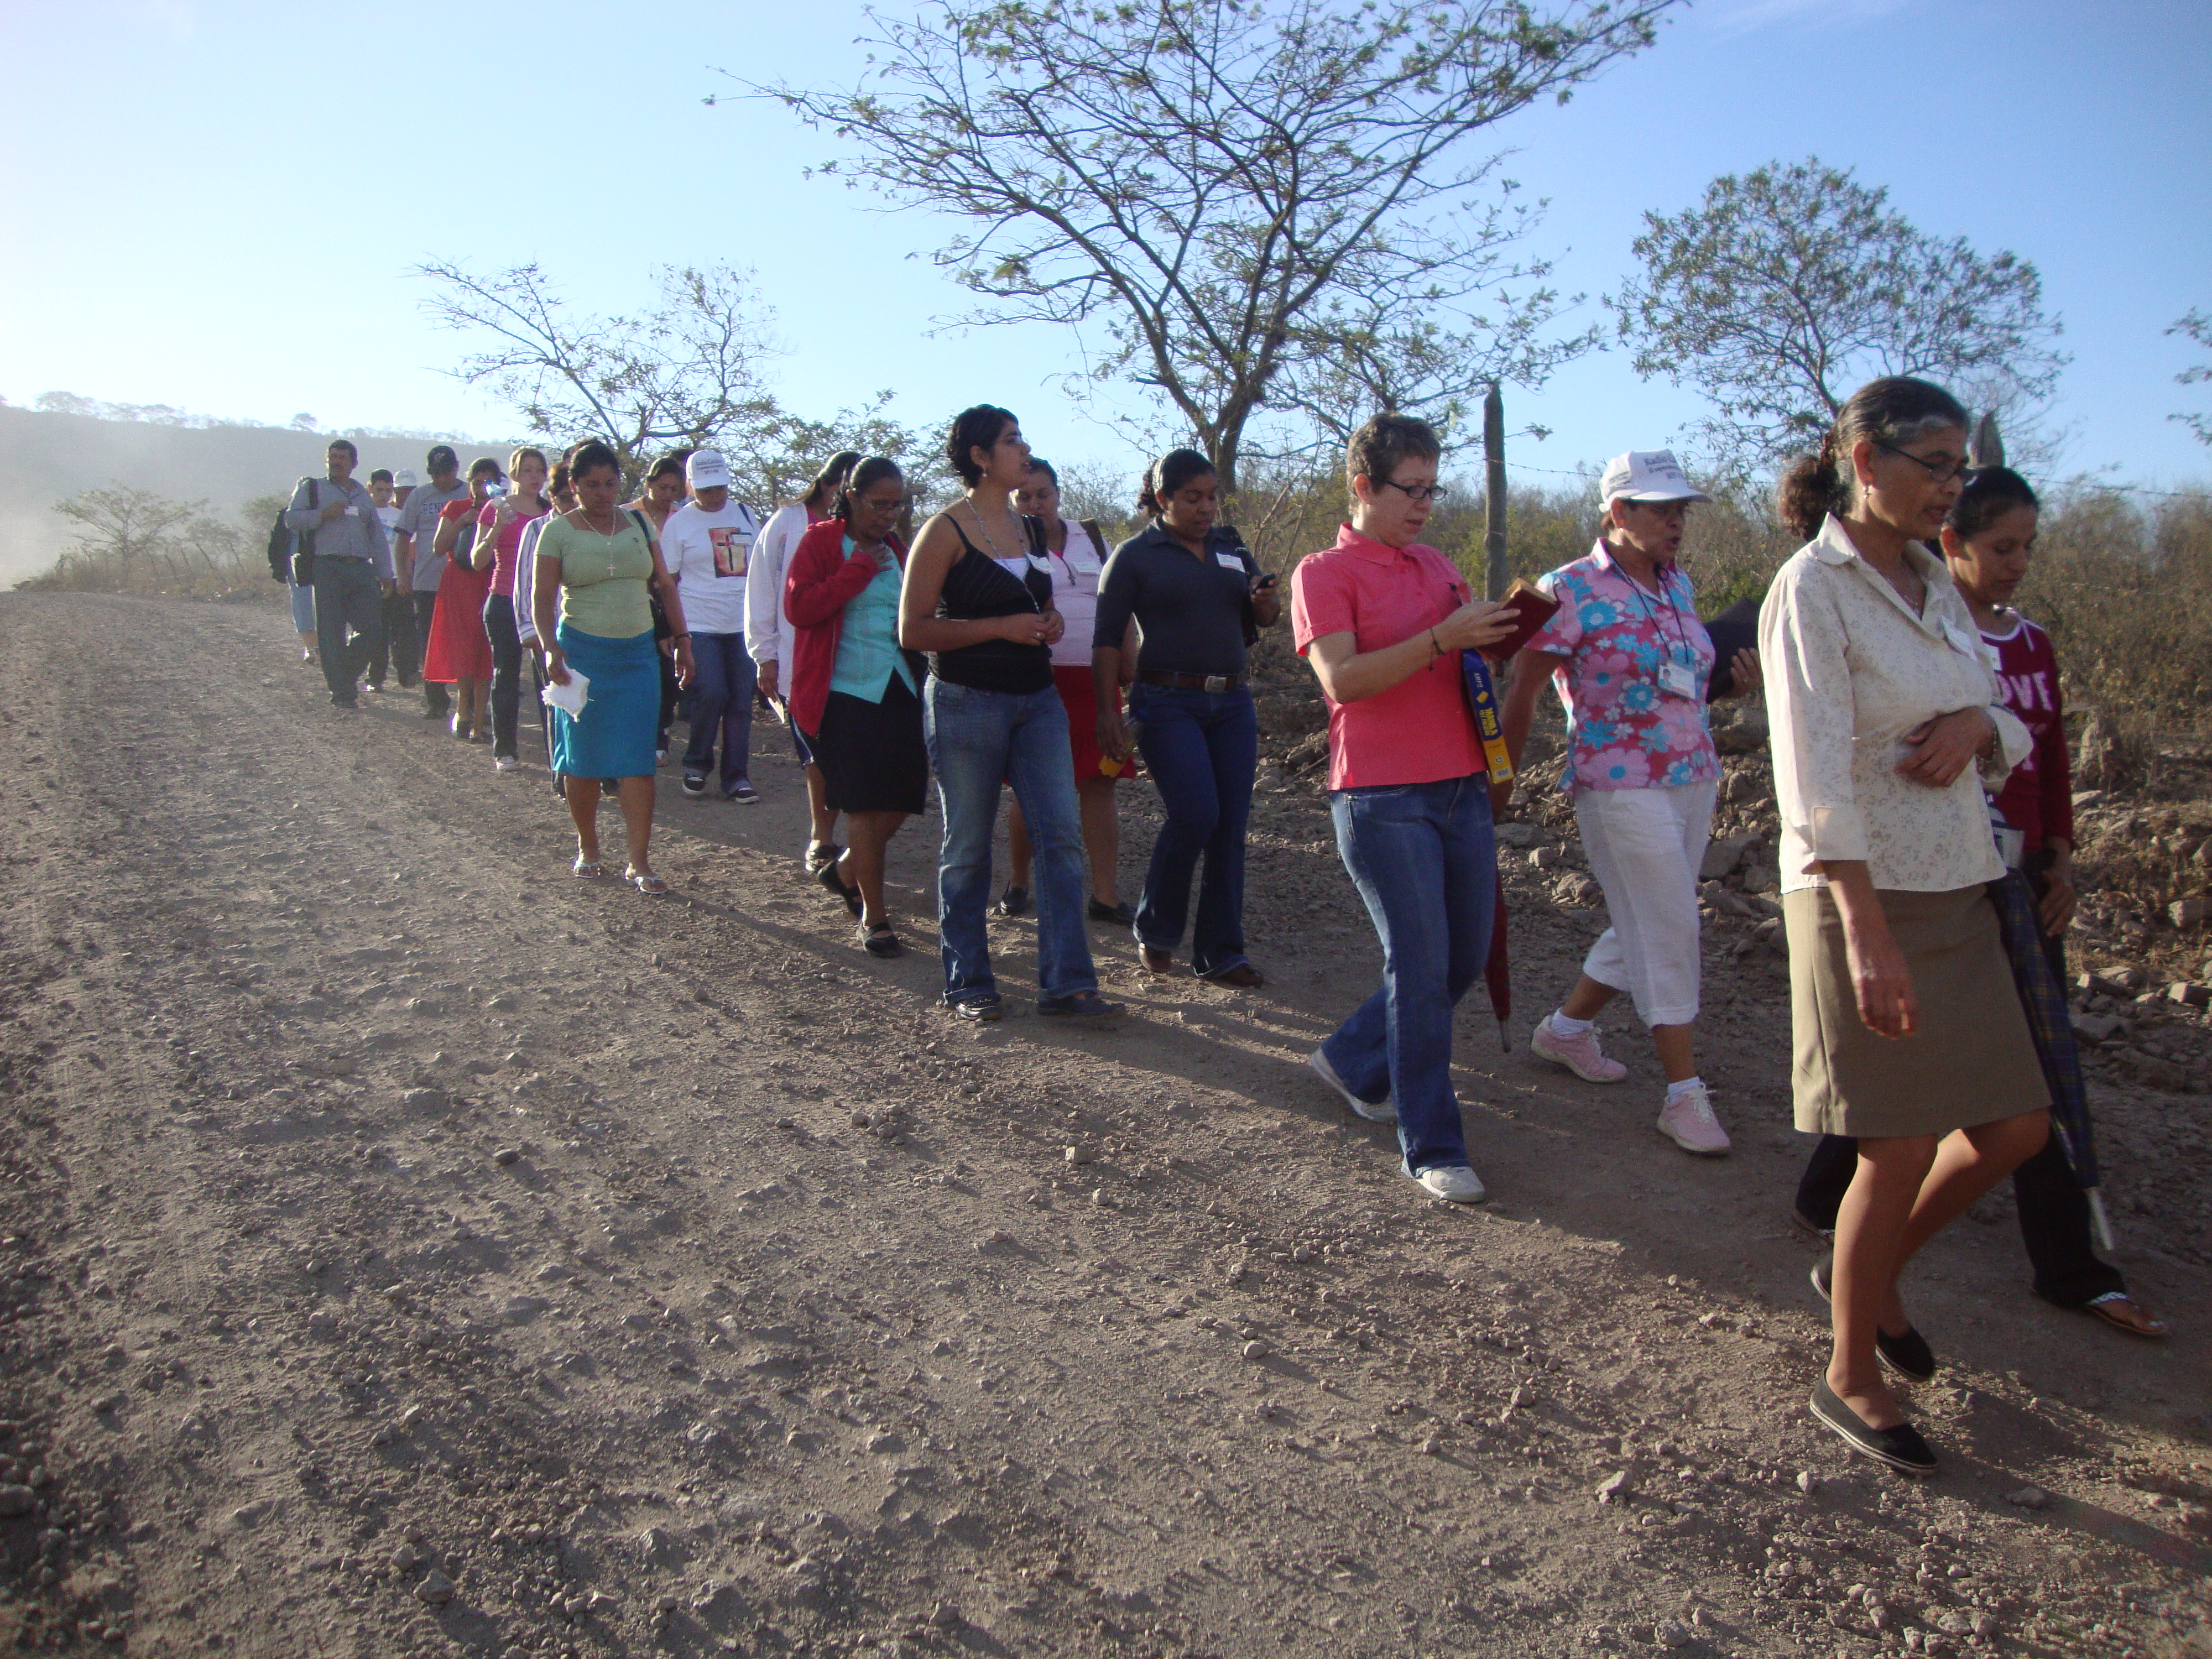 File:Mision a comunidad rural.JPG - Wikimedia Commons